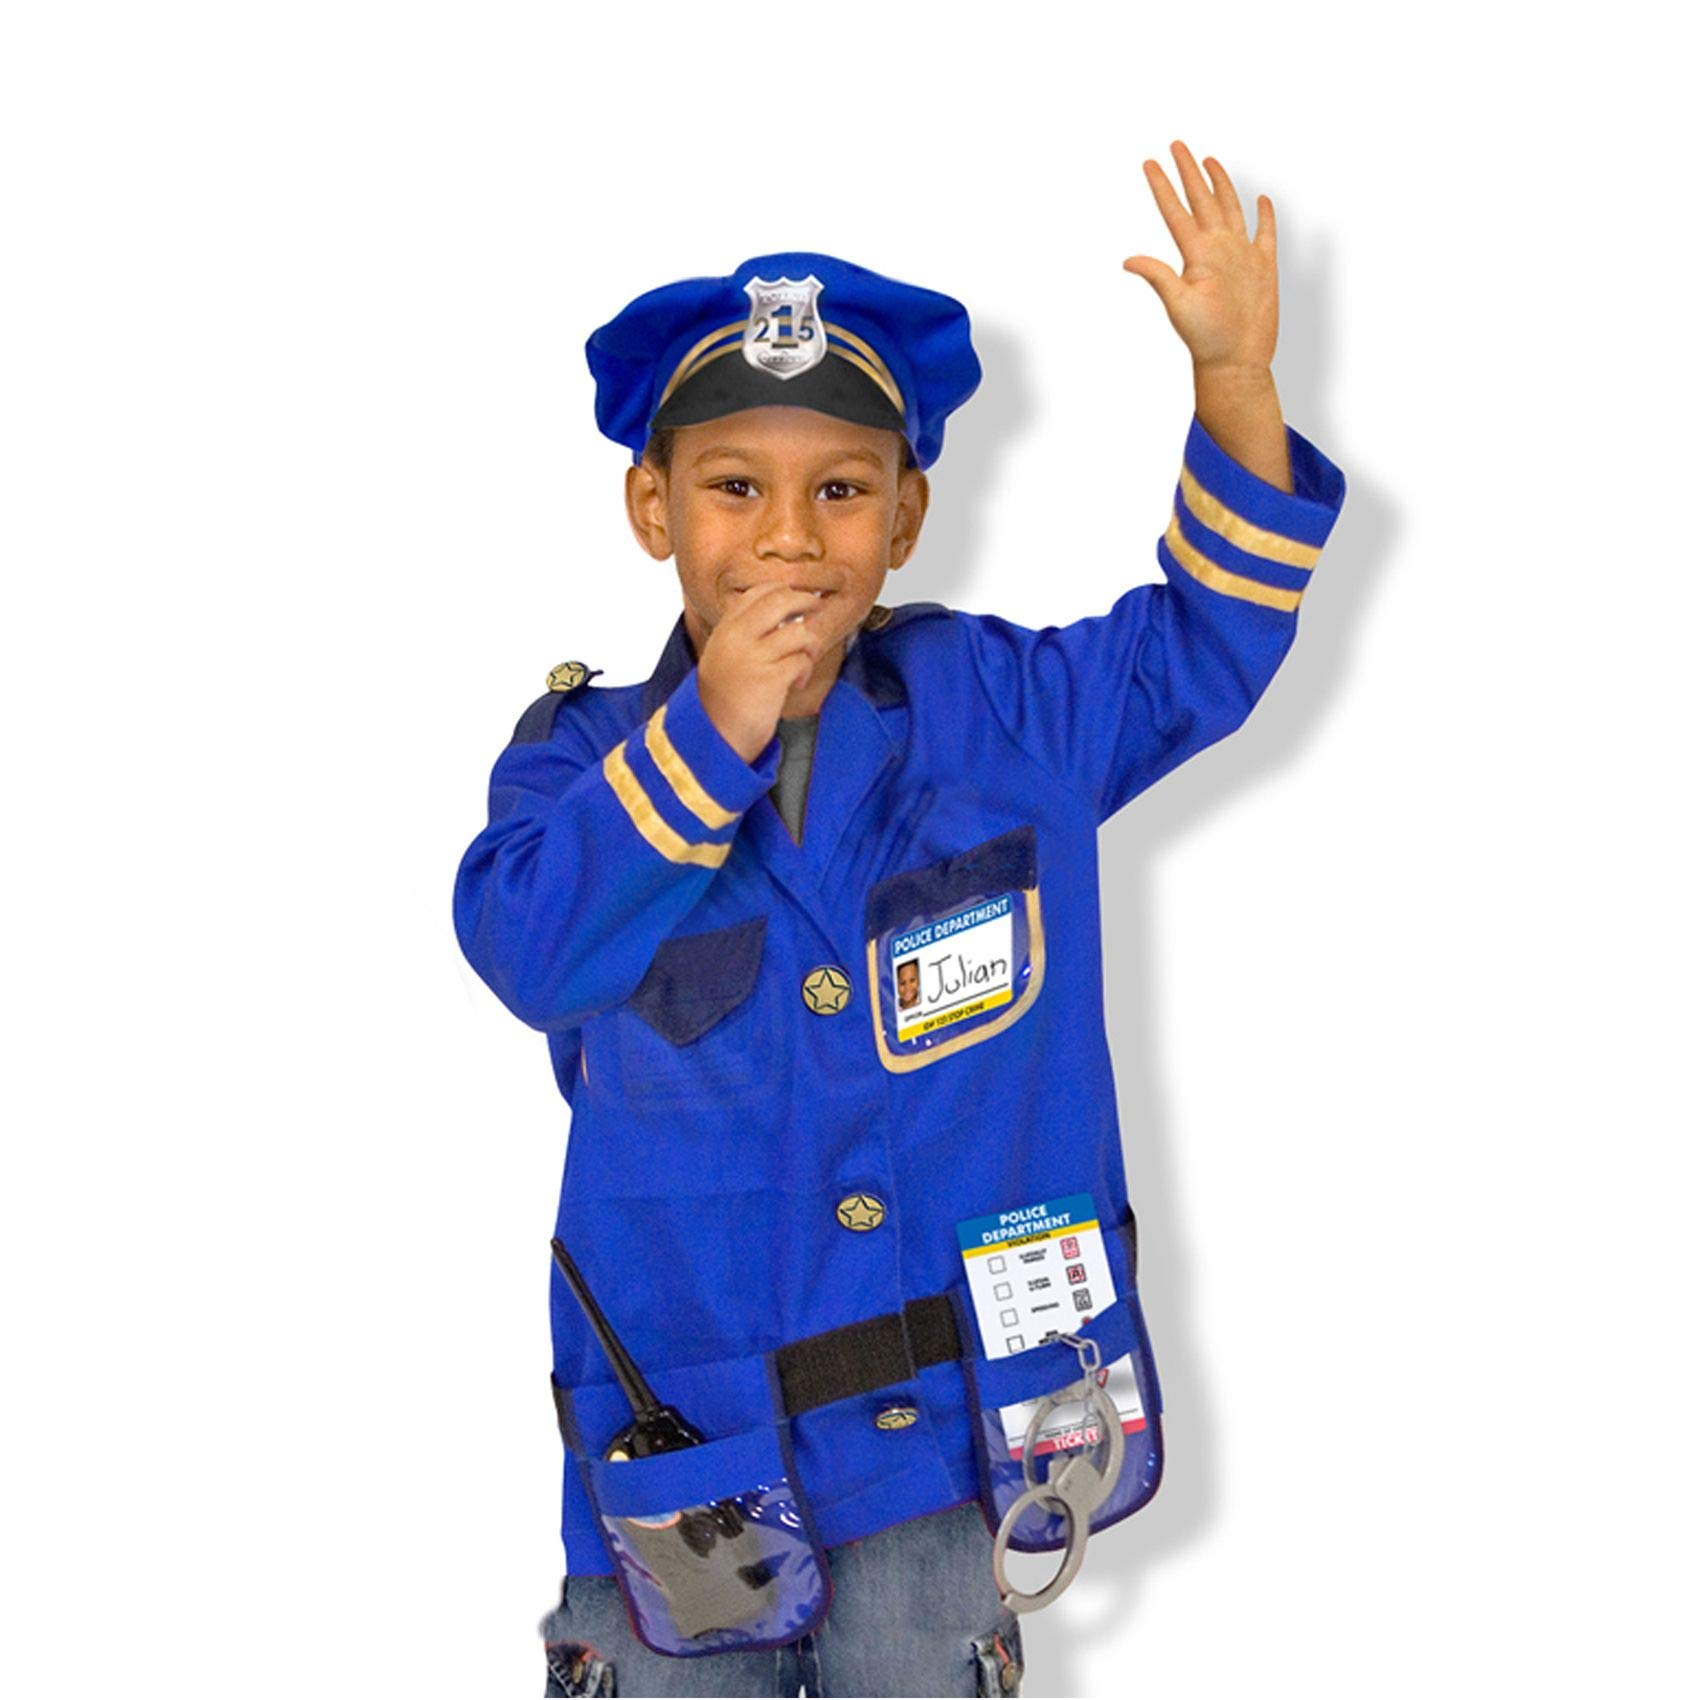 Melissa & Doug Police Officer Role-Play Costume Set, Pretend Play, Materials, Machine Washable, 17.5'' H x 24'' W x 0.75'' L